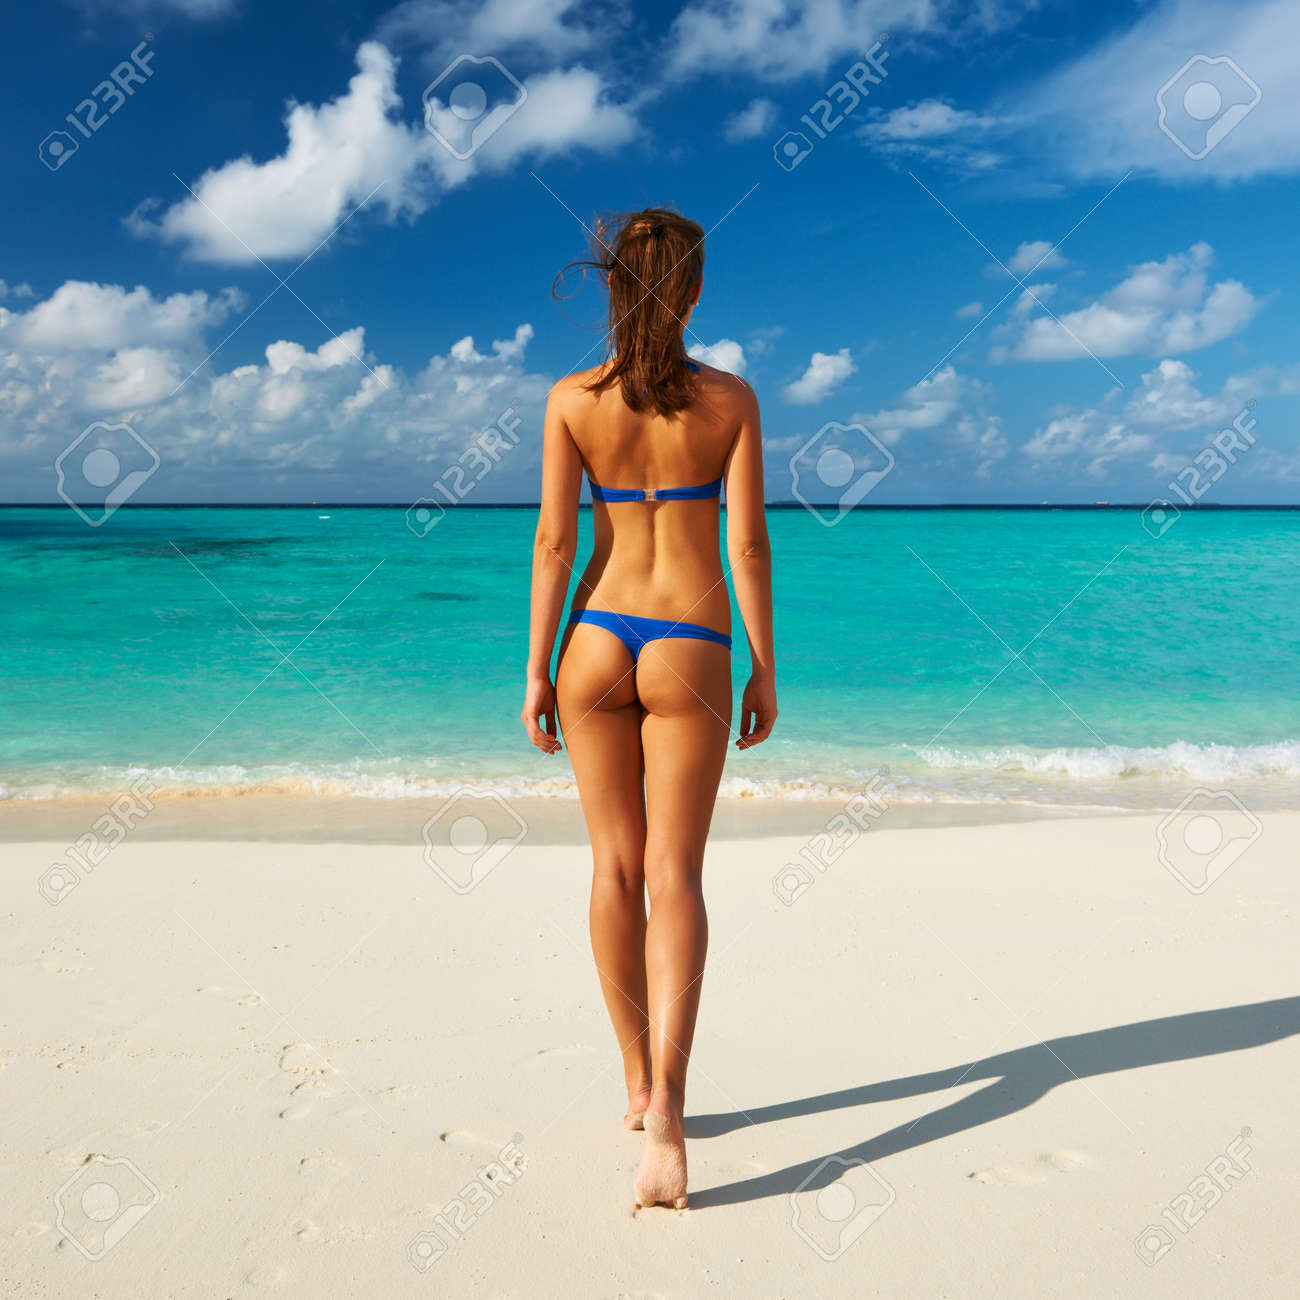 https://previews.123rf.com/images/haveseen/haveseen1303/haveseen130300123/18423982-Woman-in-bikini-at-tropical-beach-Stock-Photo-thong.jpg